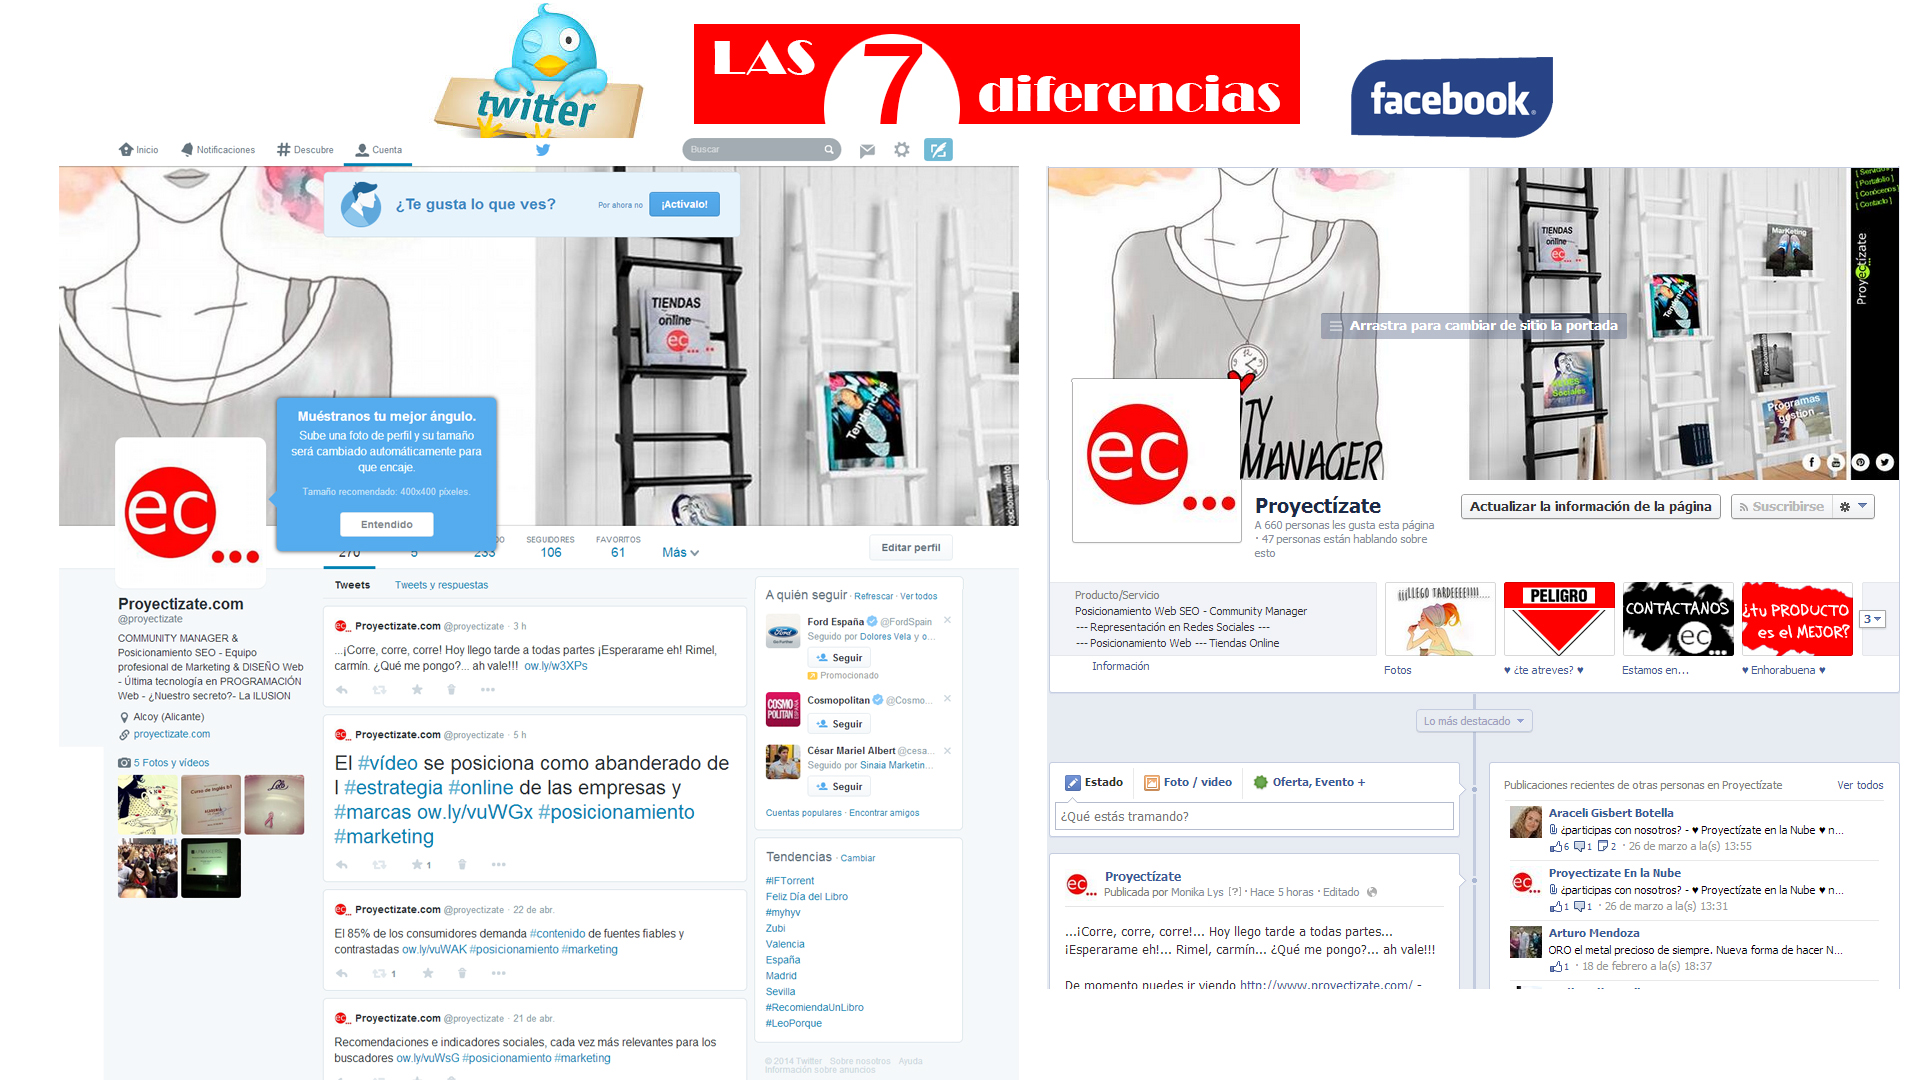 twitter-facebook-community-manager-alicante-murcia